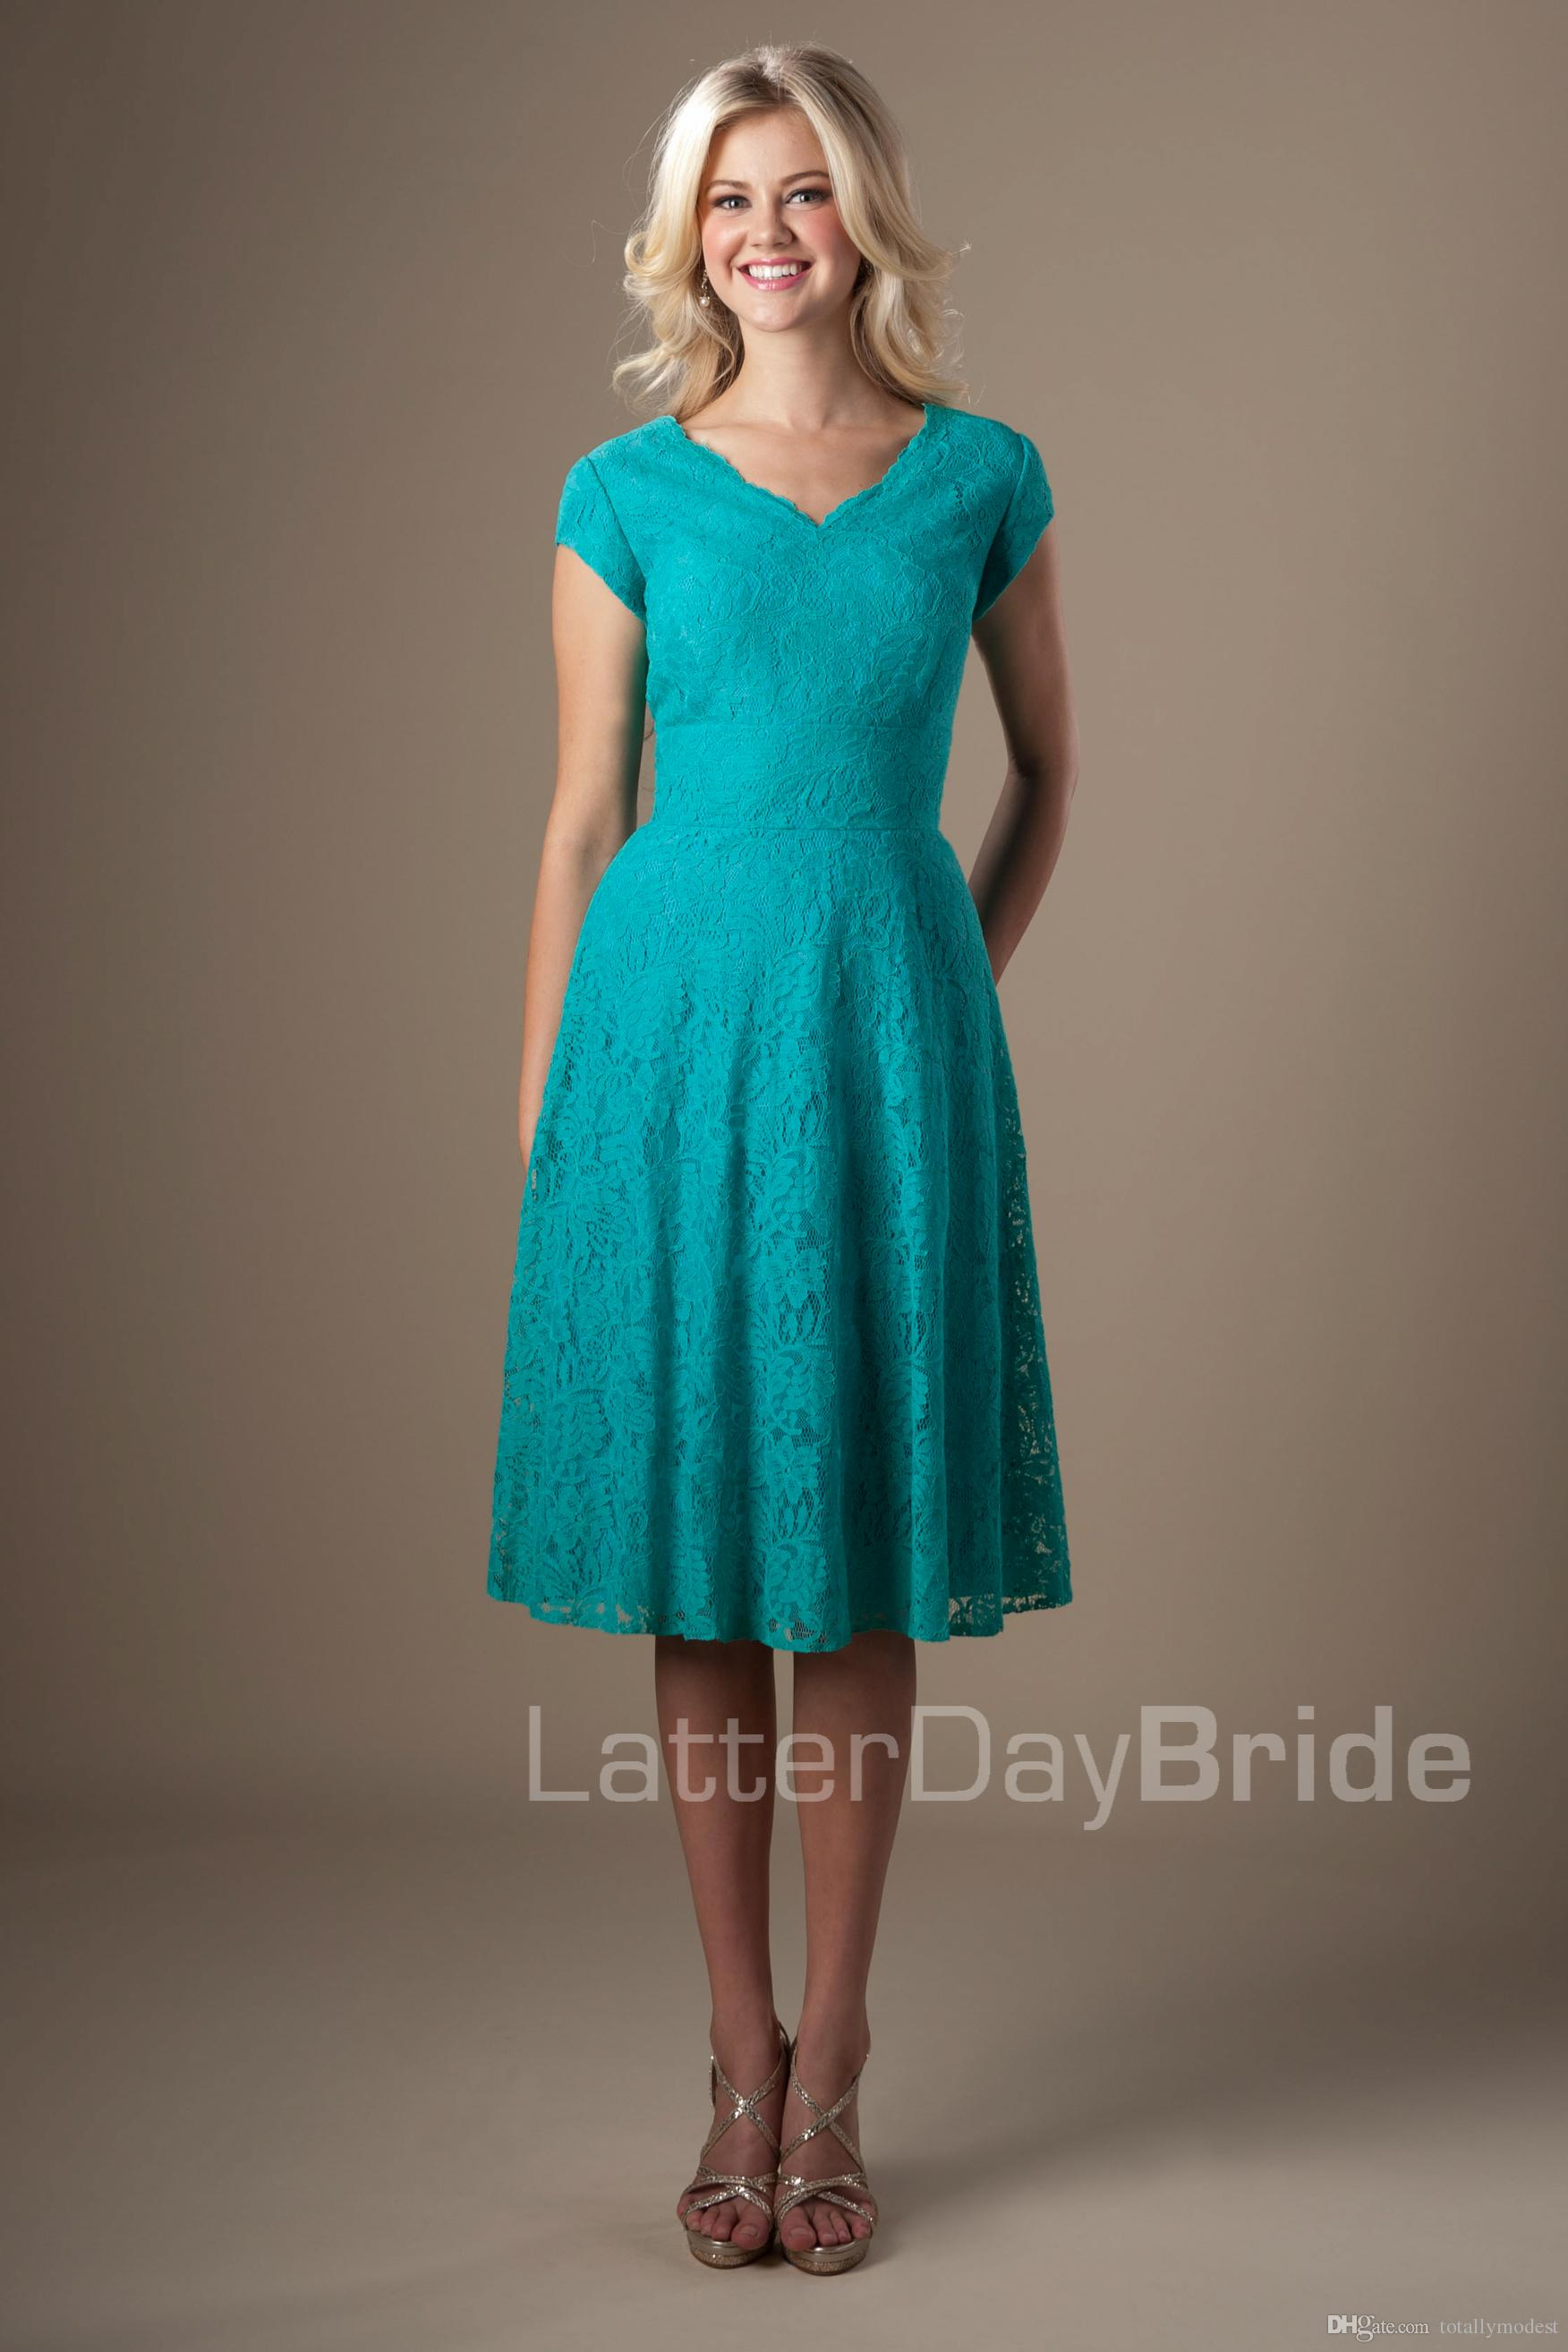 Teal Lace Vintage Short Modest Bridesmaid Dresses With Cap